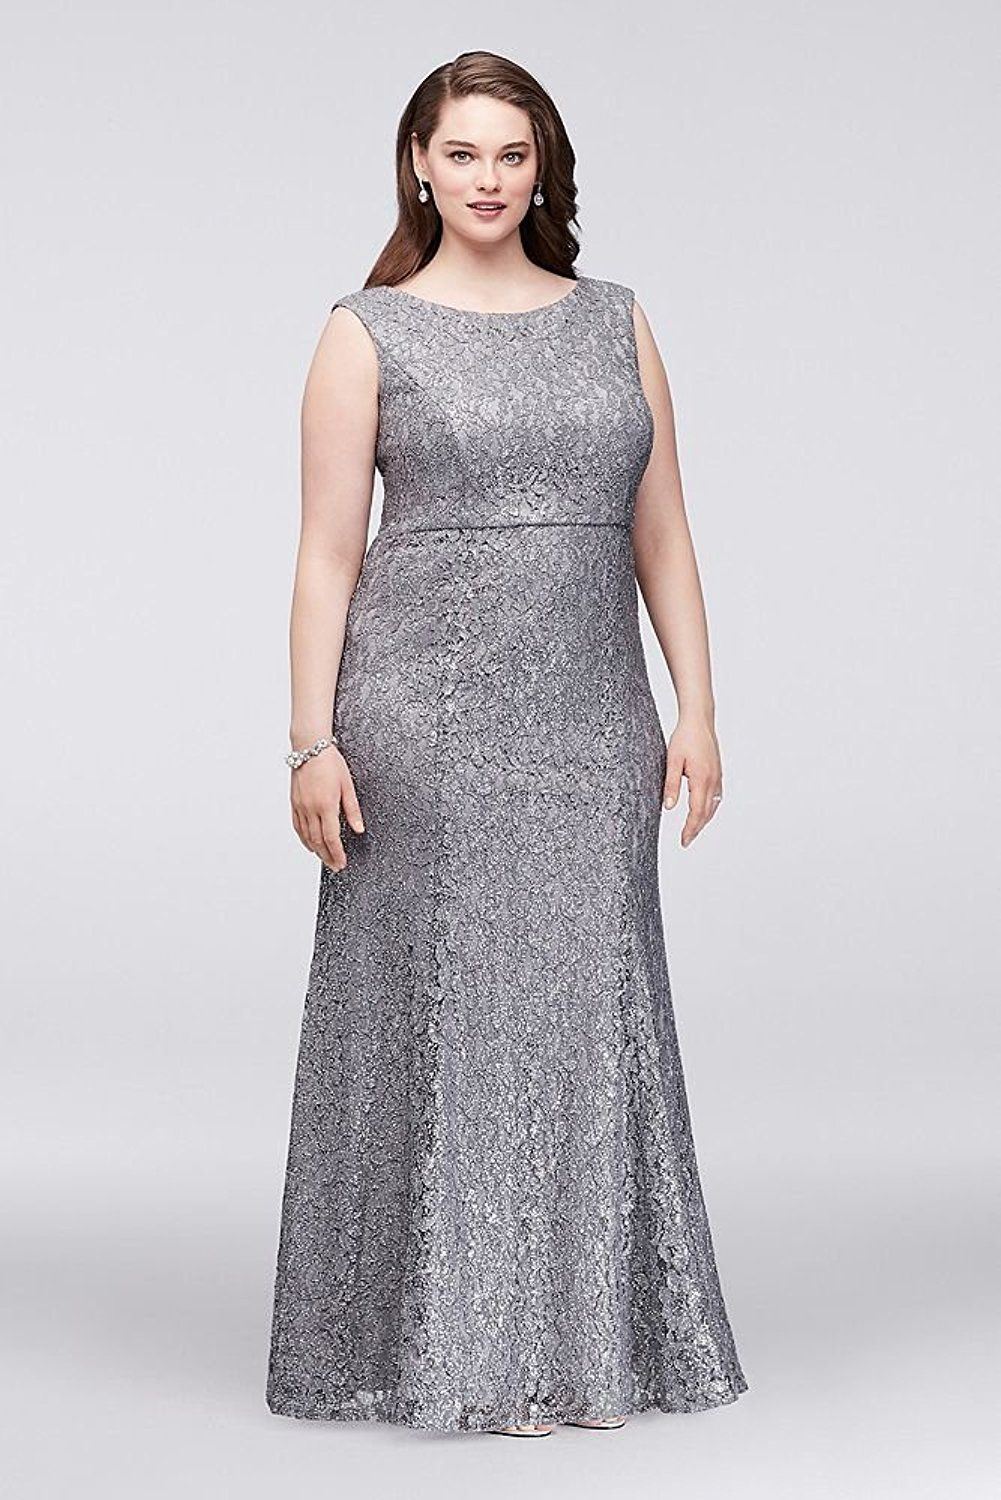 854382314c Plus Size Wedding Guest Dress - Glitter Lace Plus Size Mother of Bride Groom  Gown with Chiffon Capelet Style (sponsored)